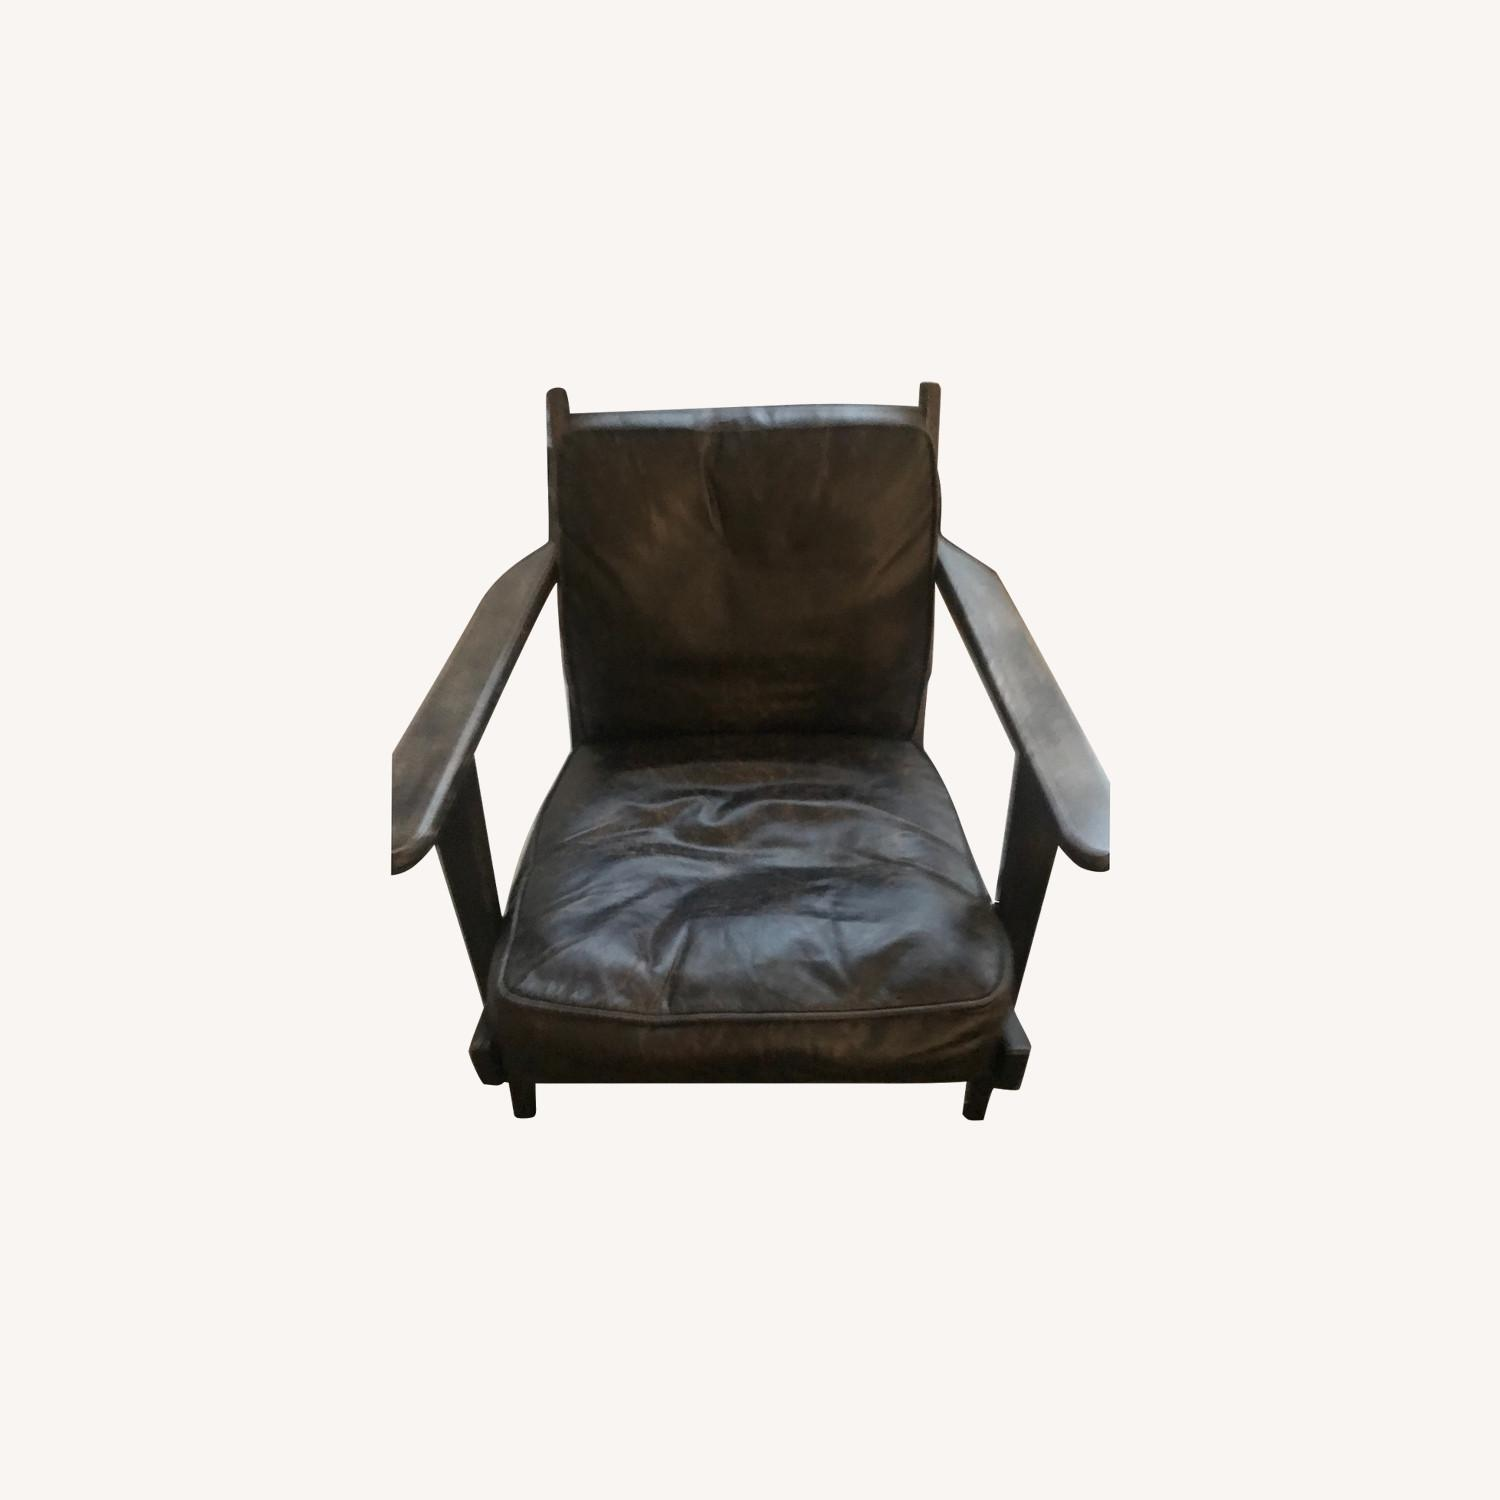 France and Son Lounge Chair - Worn Black Leather - image-0